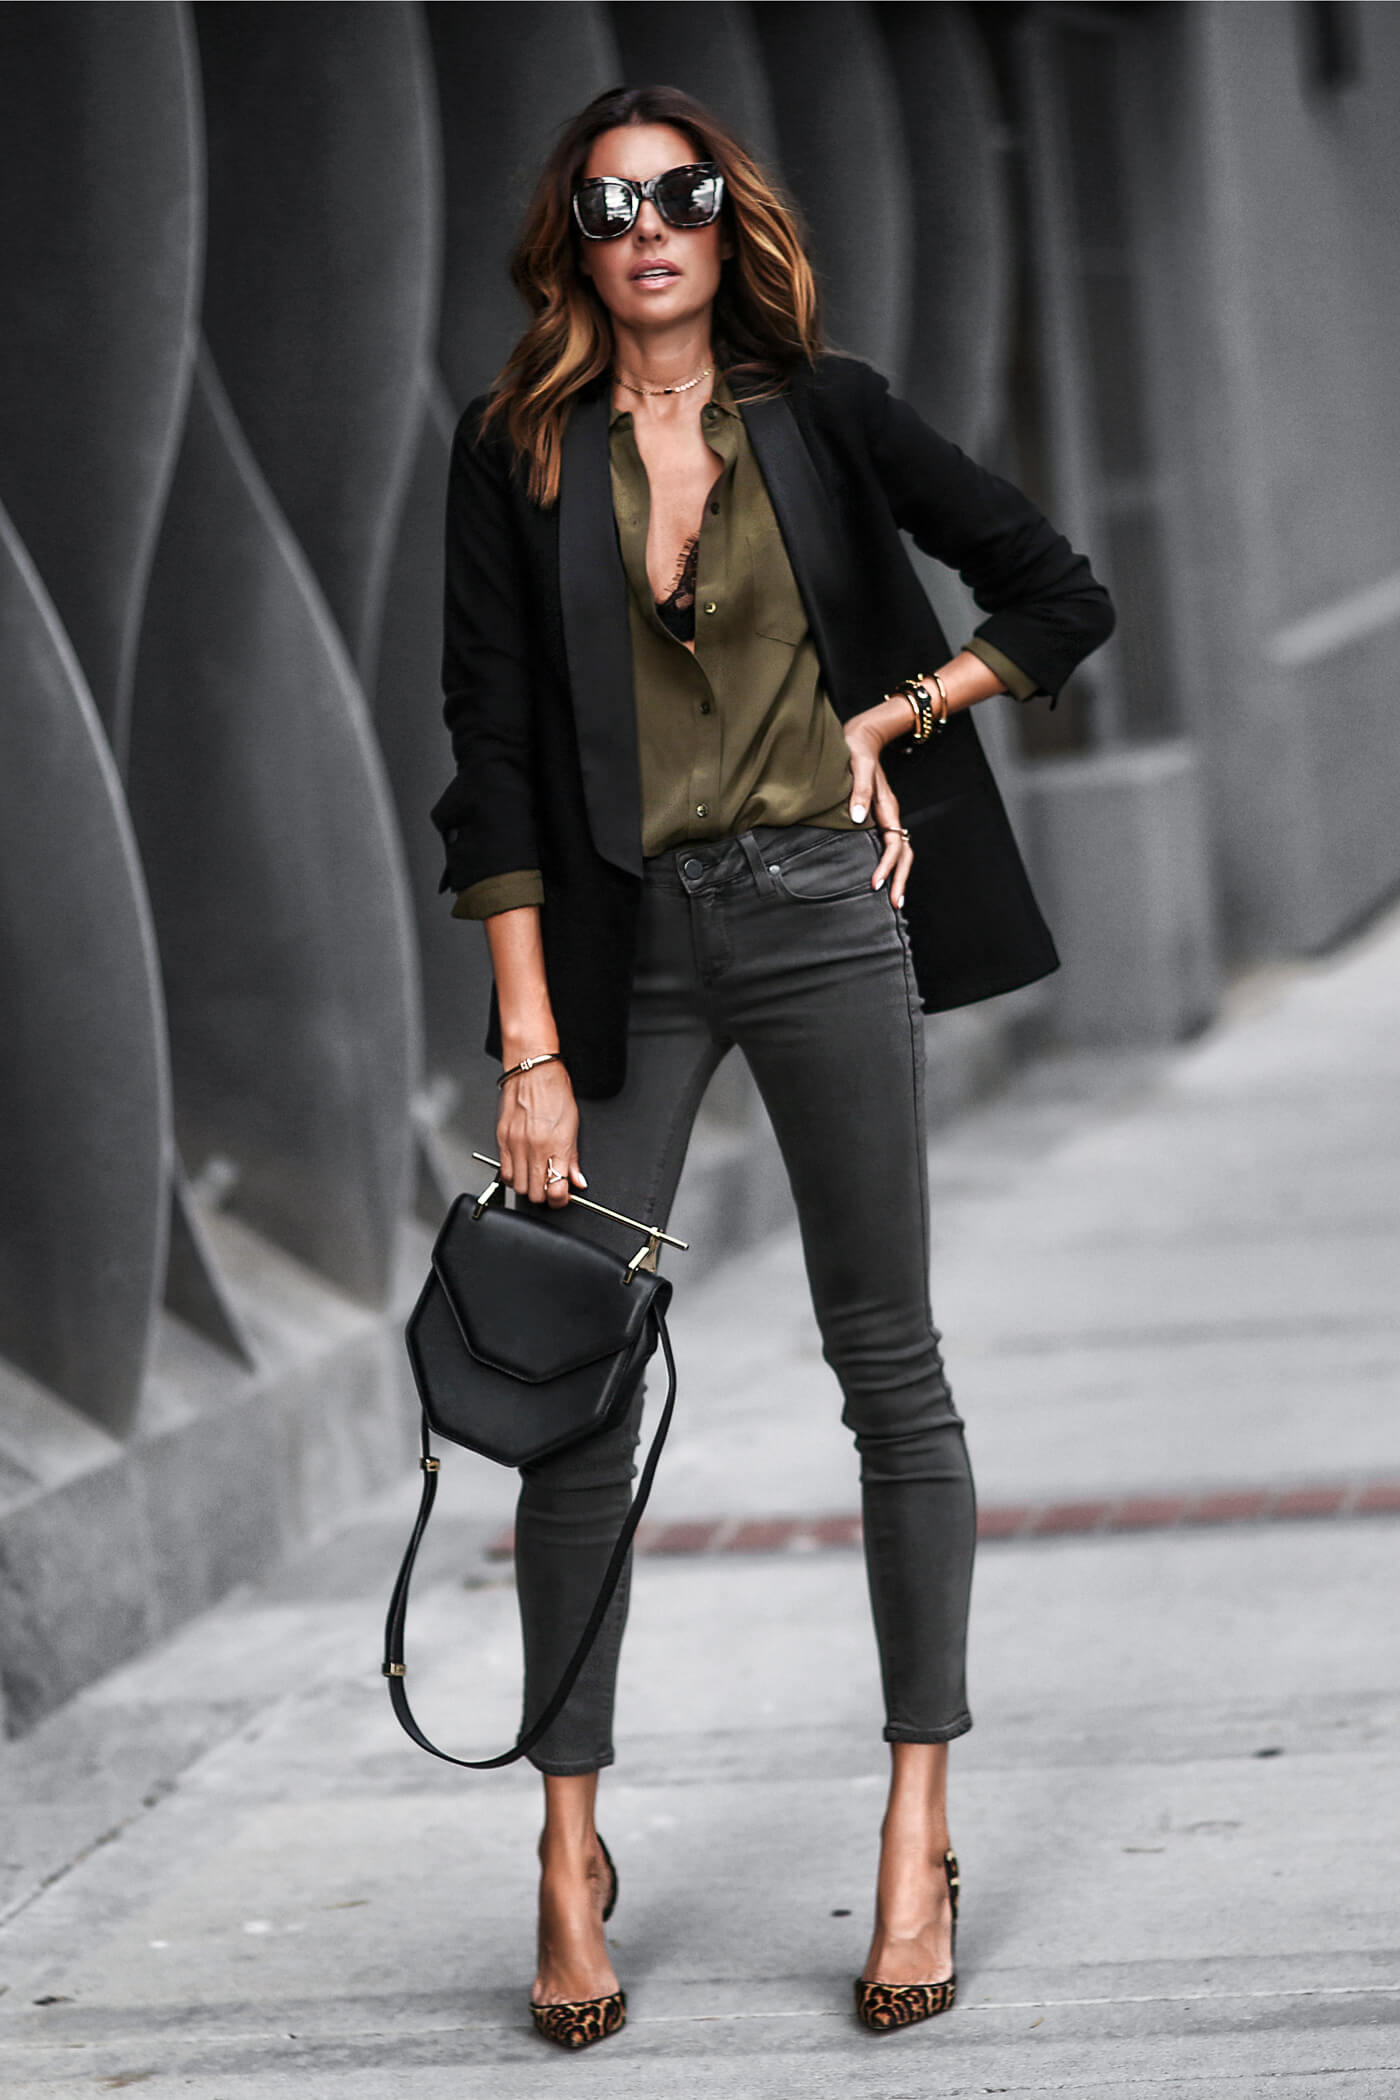 fashioned-chic-1-1.jpg